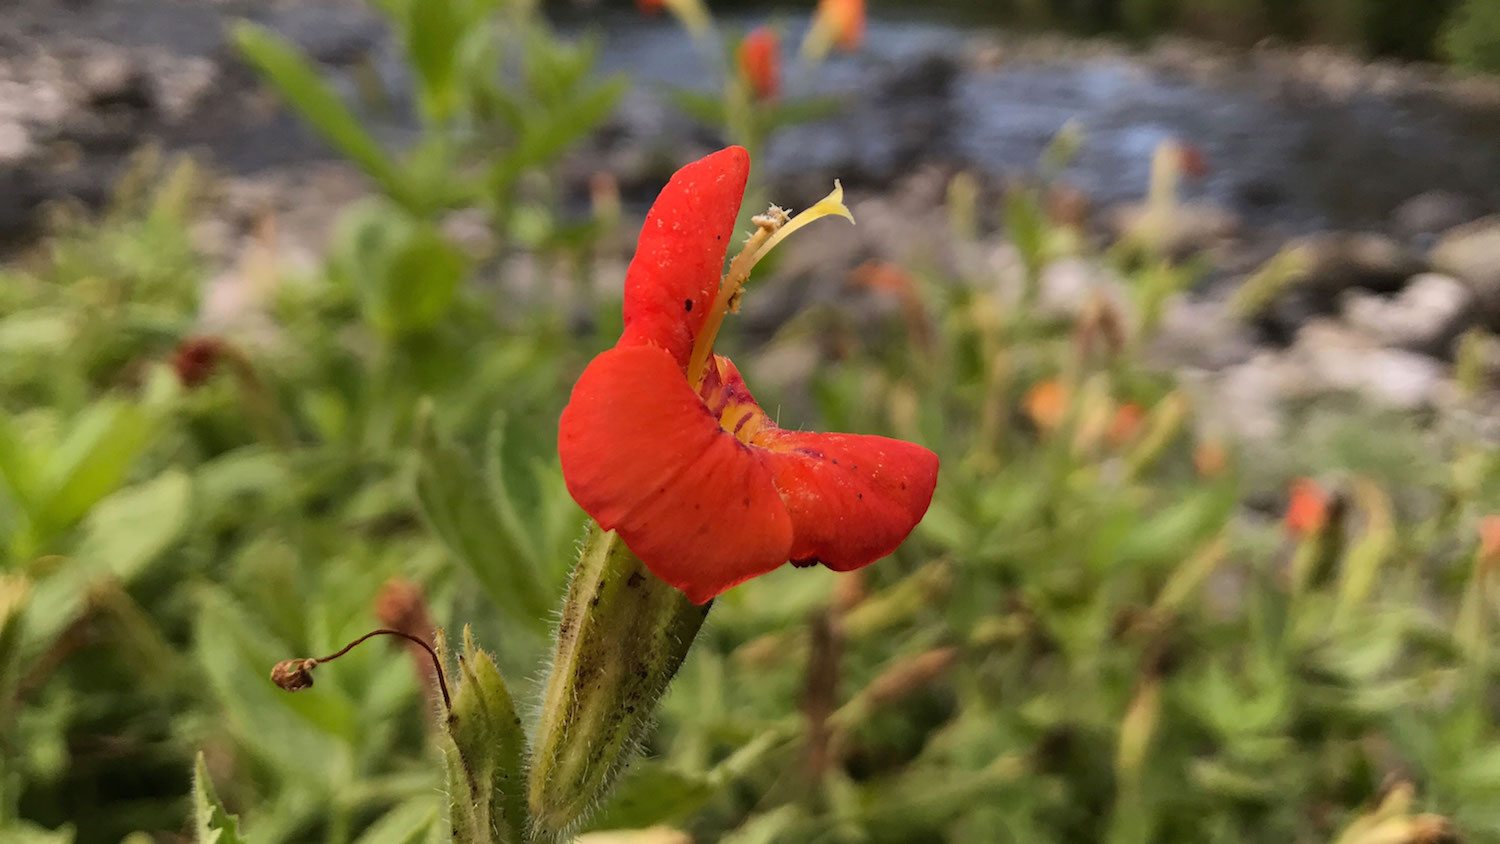 red flower growing near water